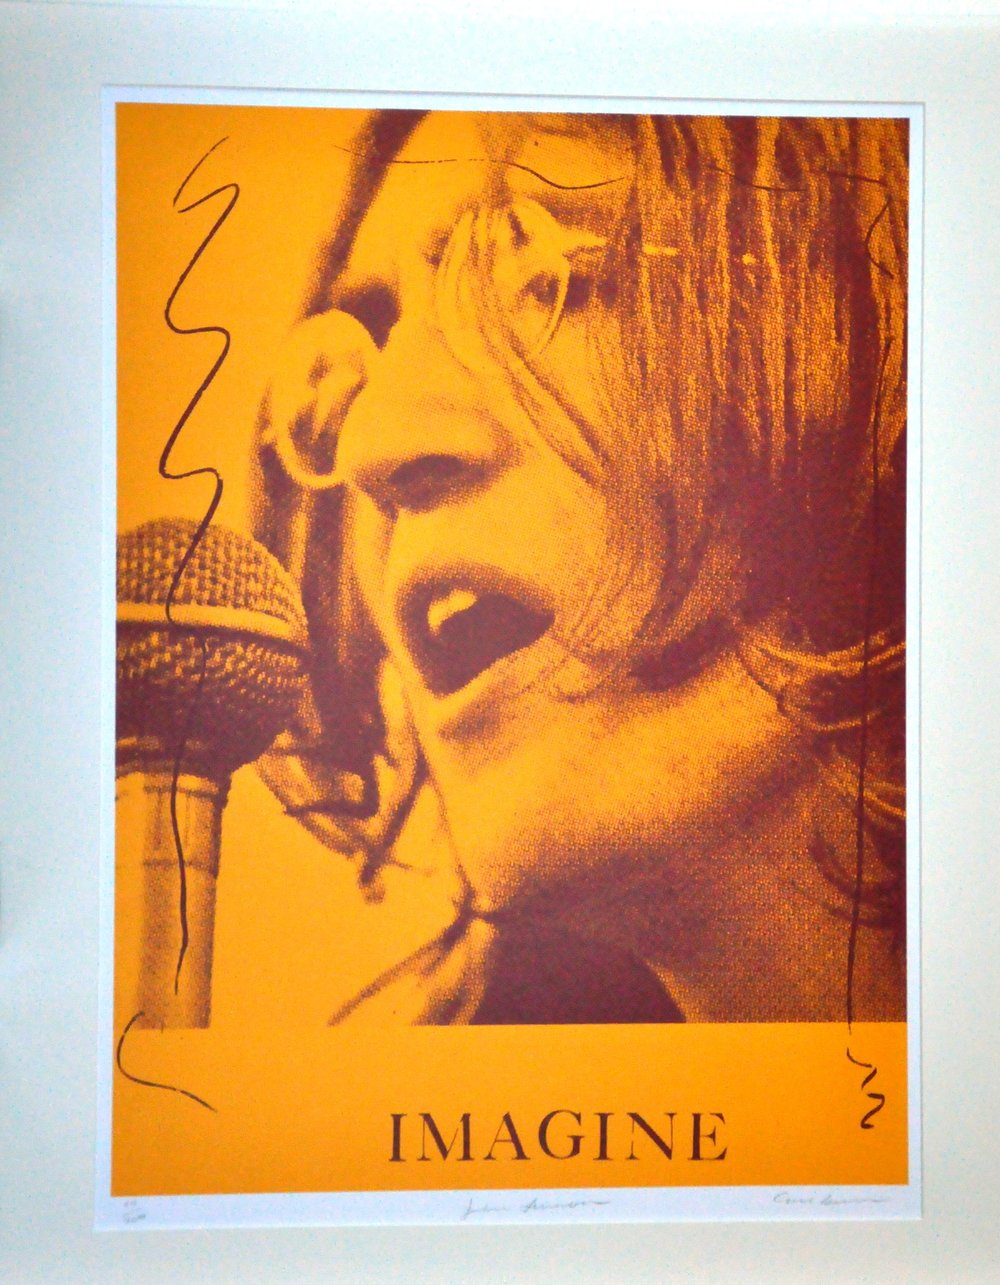 "John Lennon,  2000, Carl Beam, serigraph on paper, edition 54/200, 30"" x 22"", 2006.05.07, gift of the Milton Winberg Foundation"